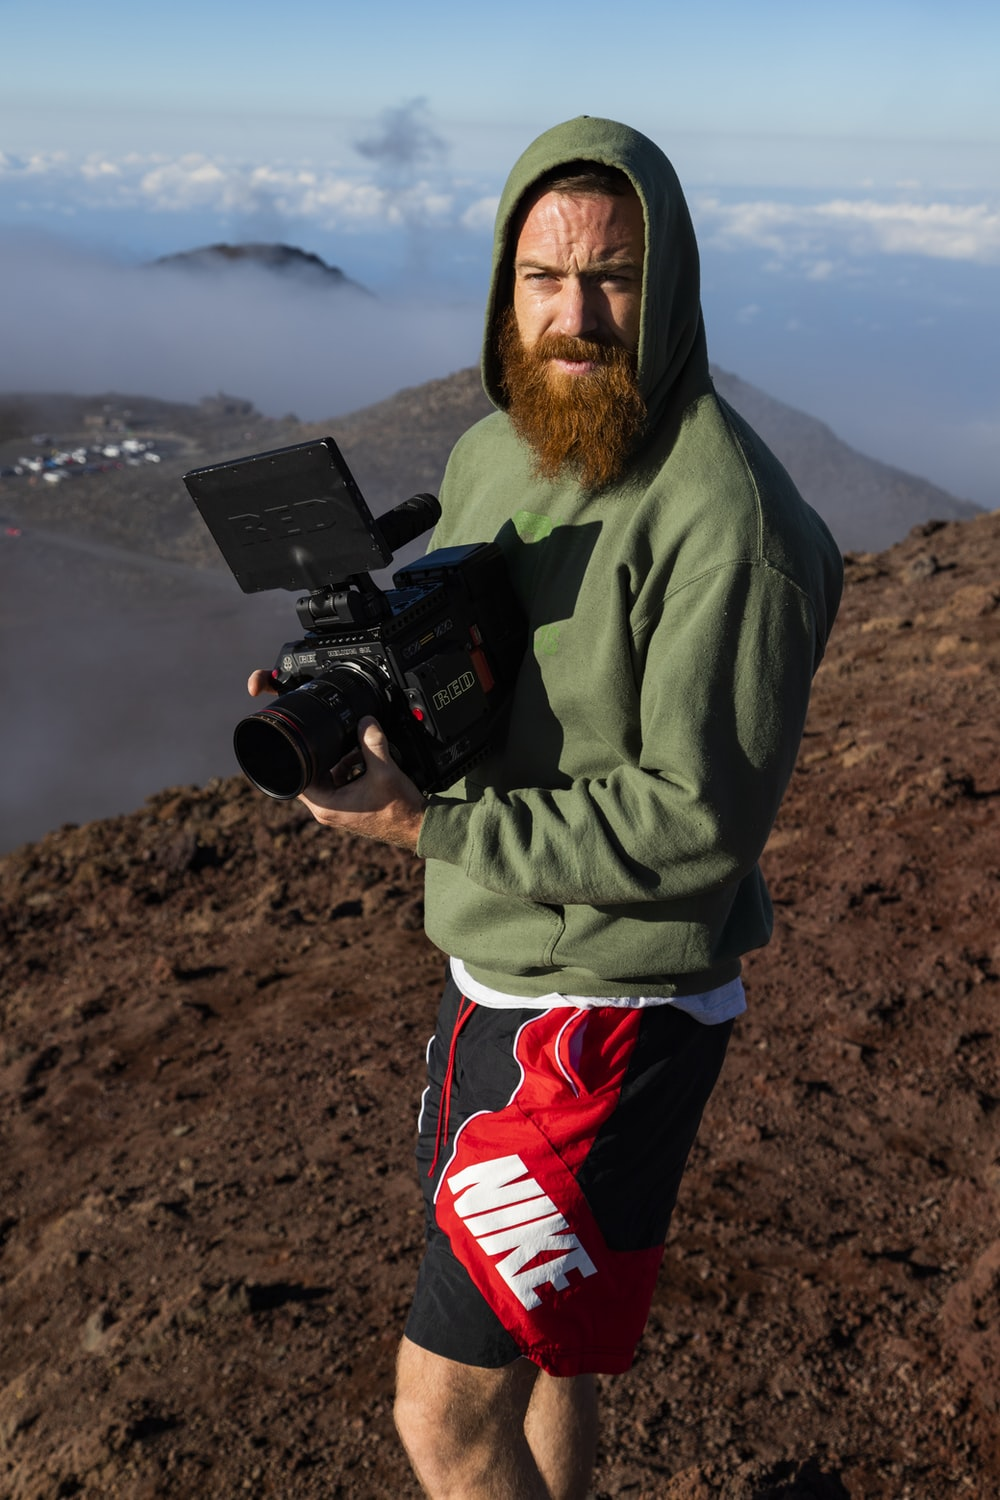 man standing on top of mountain while holding video camera